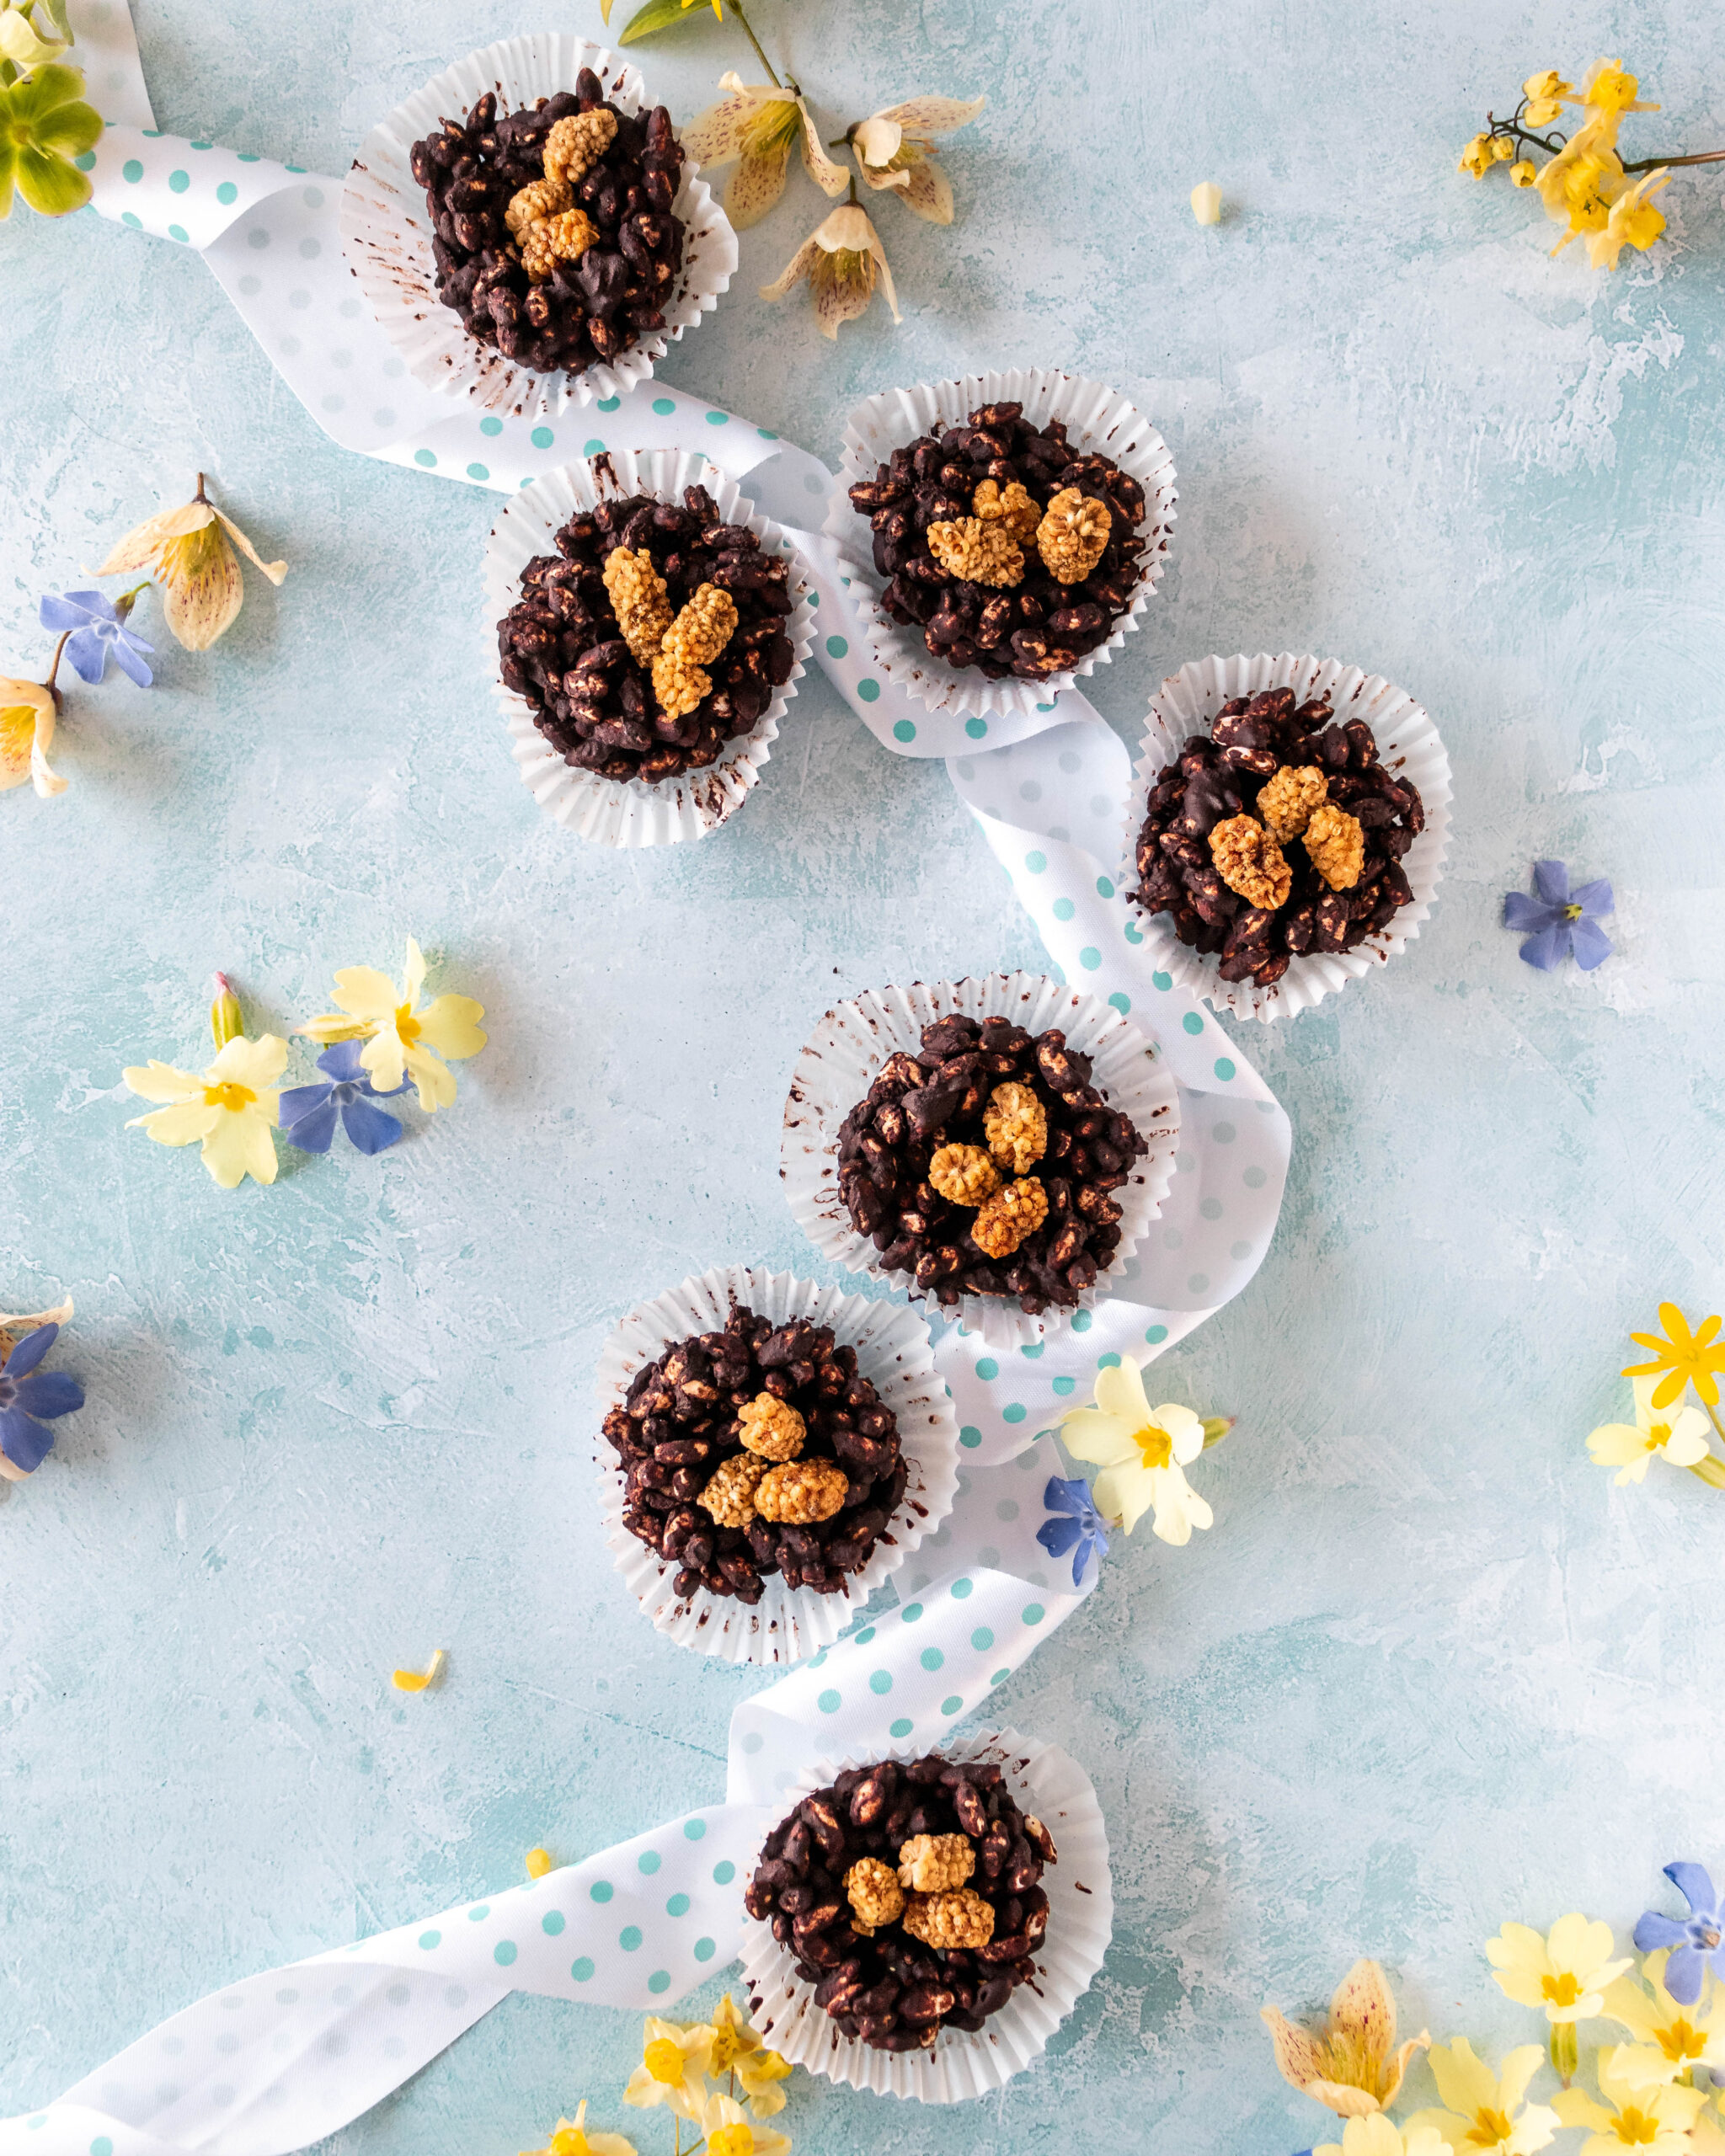 Healthy Dairy and Gluten Free Chocolate Nest